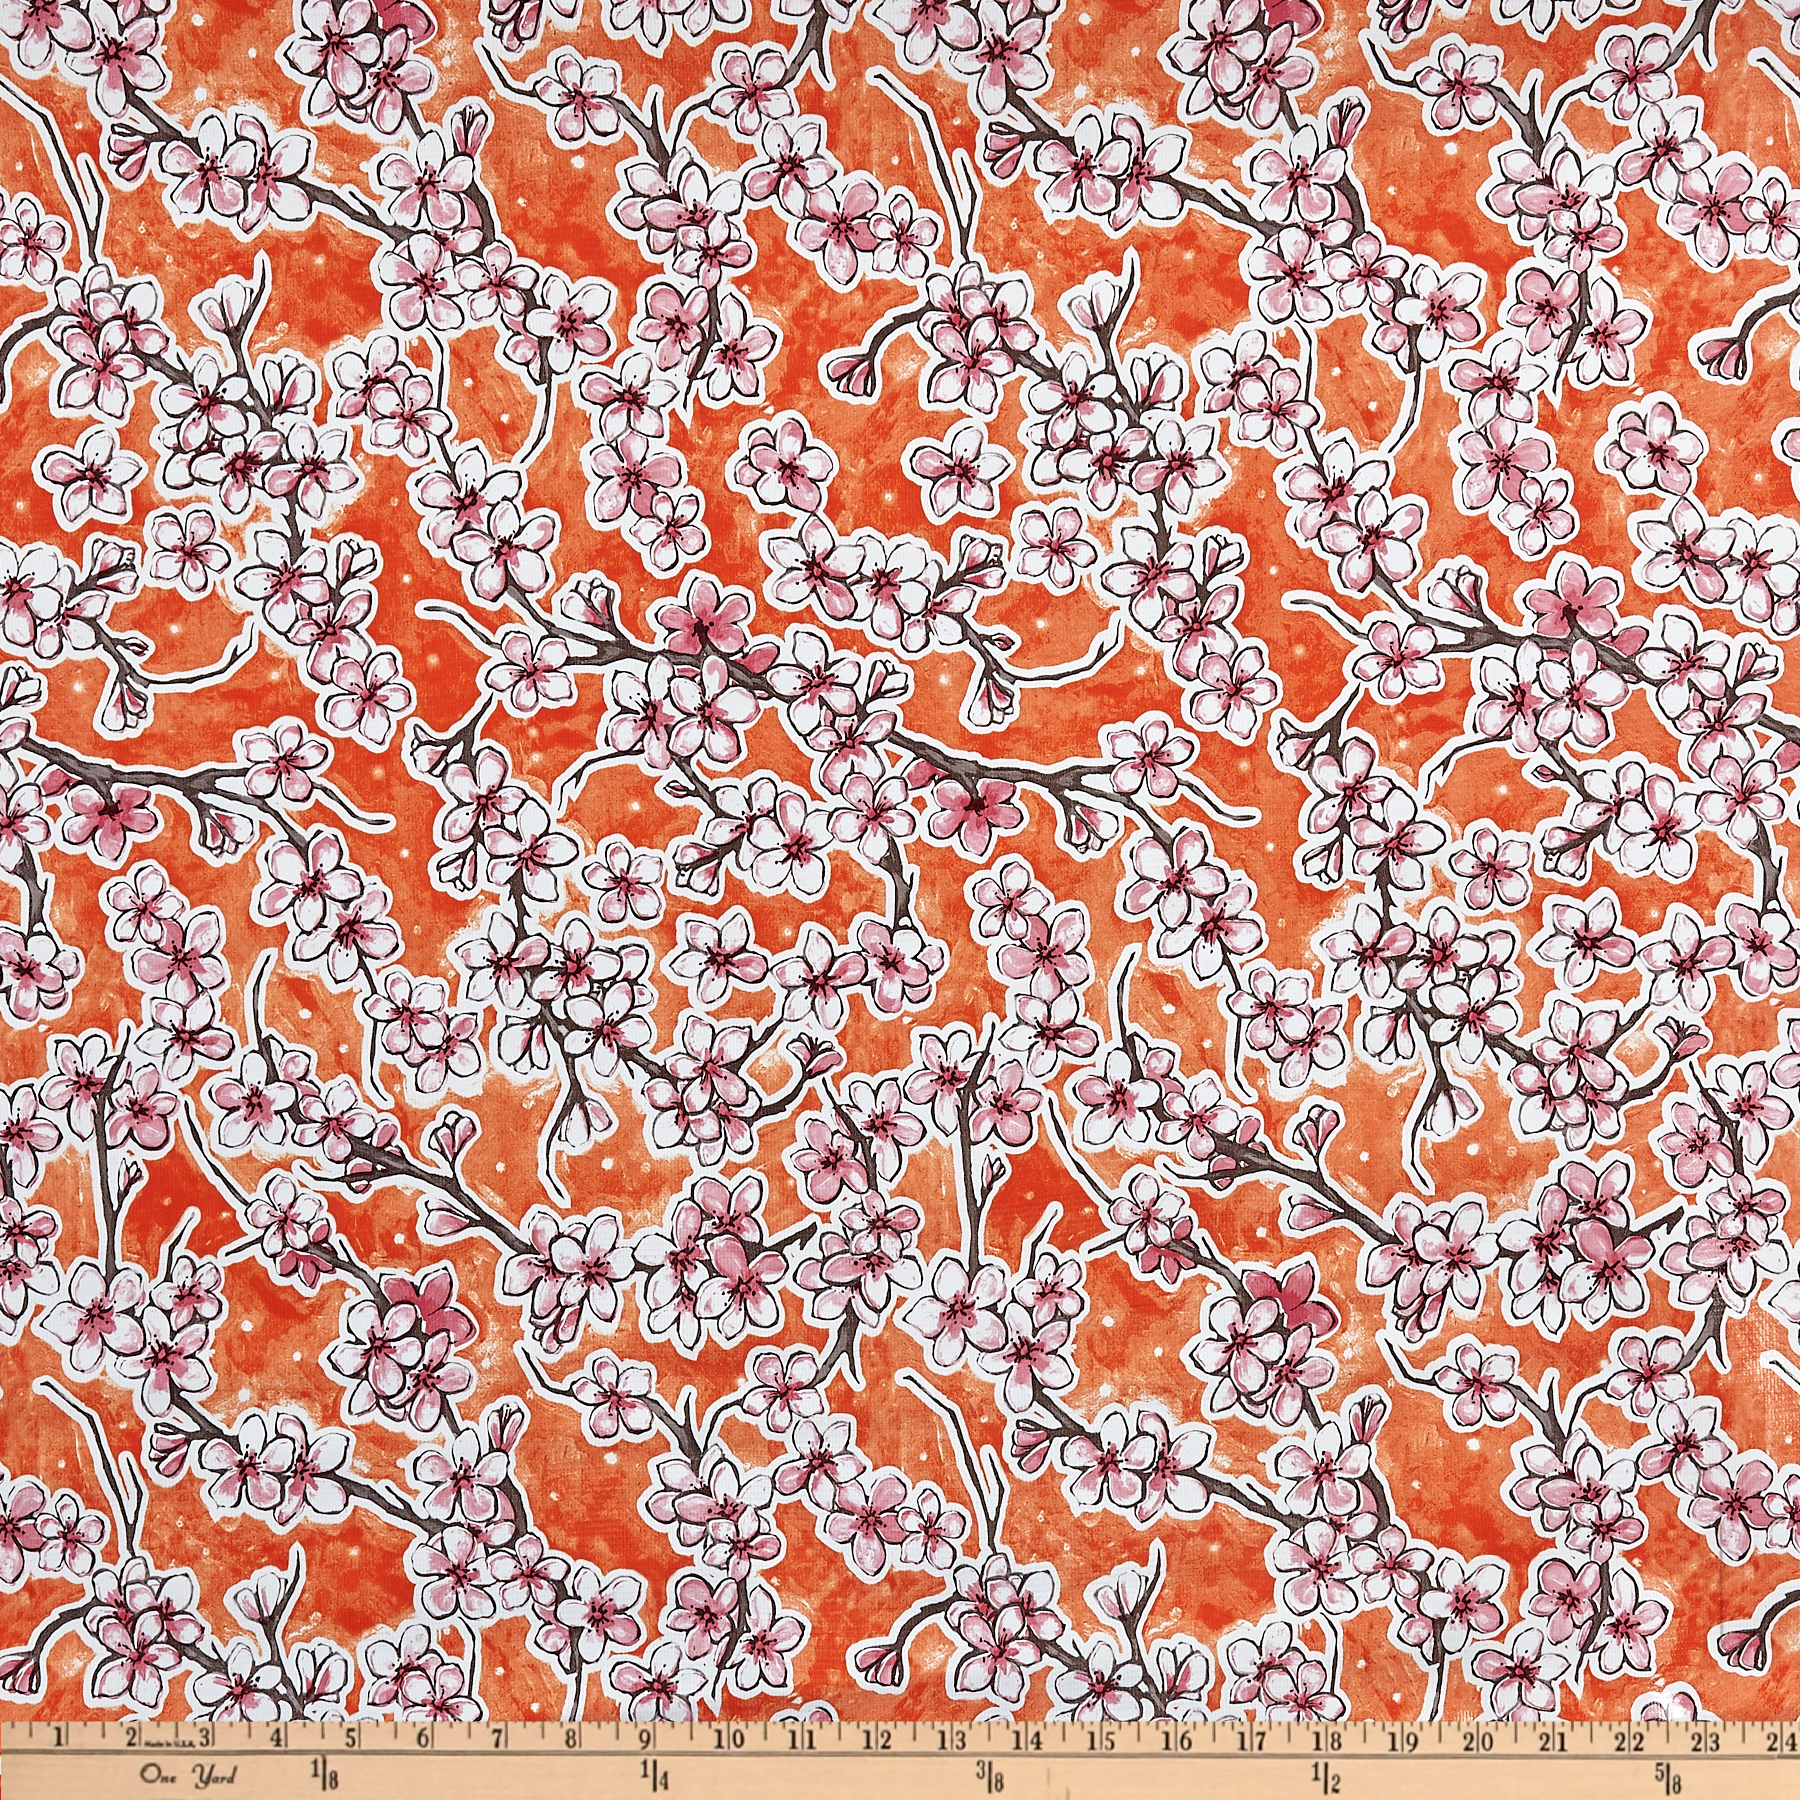 Oil Cloth Fuji Floral Orange Fabric